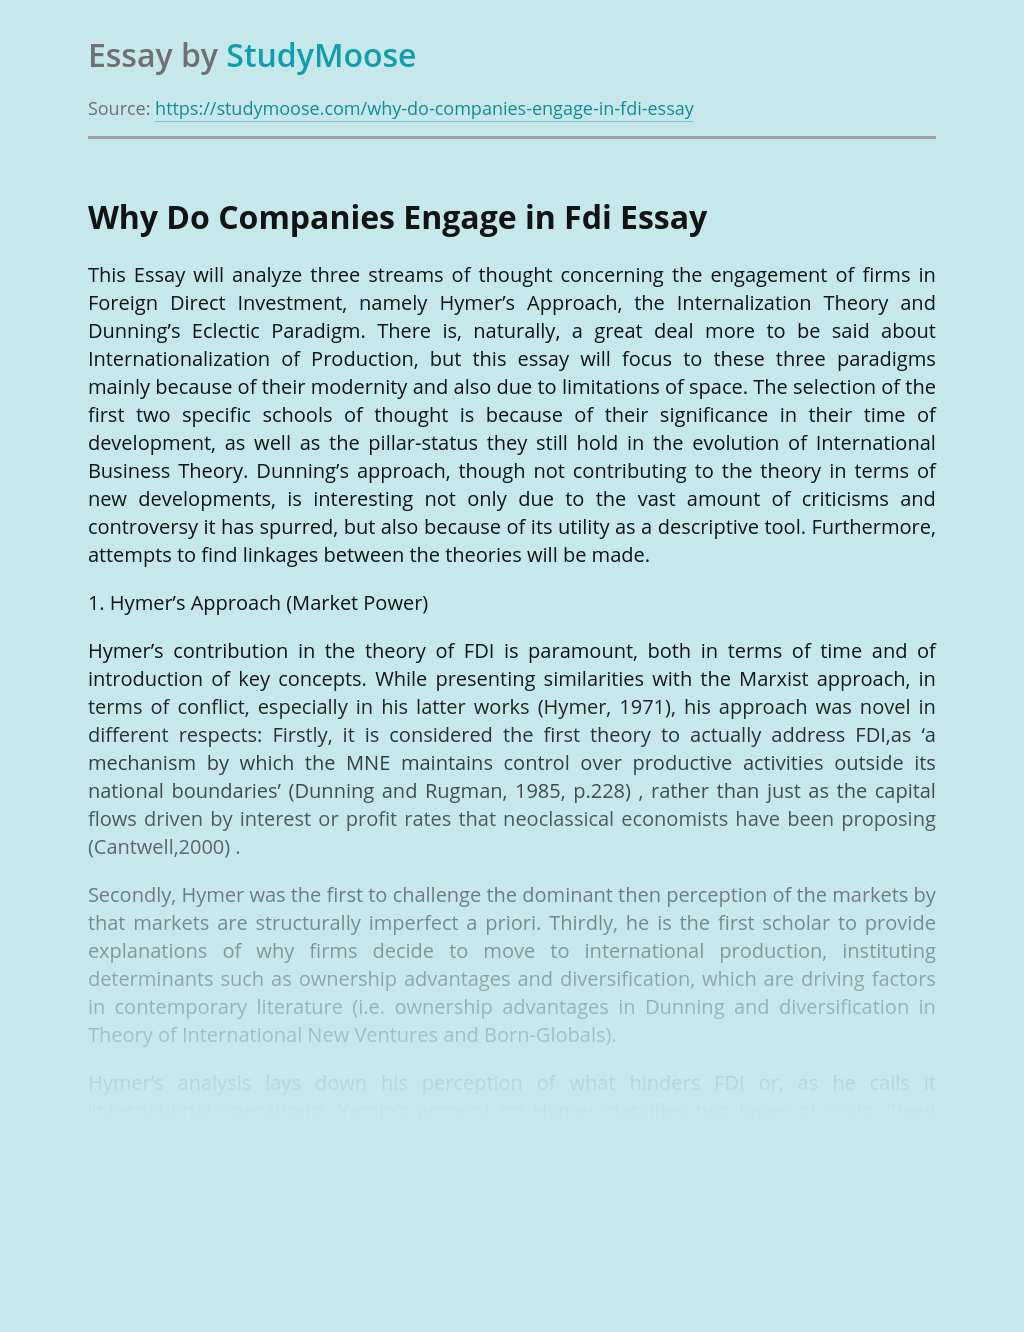 Why Do Companies Engage in Fdi